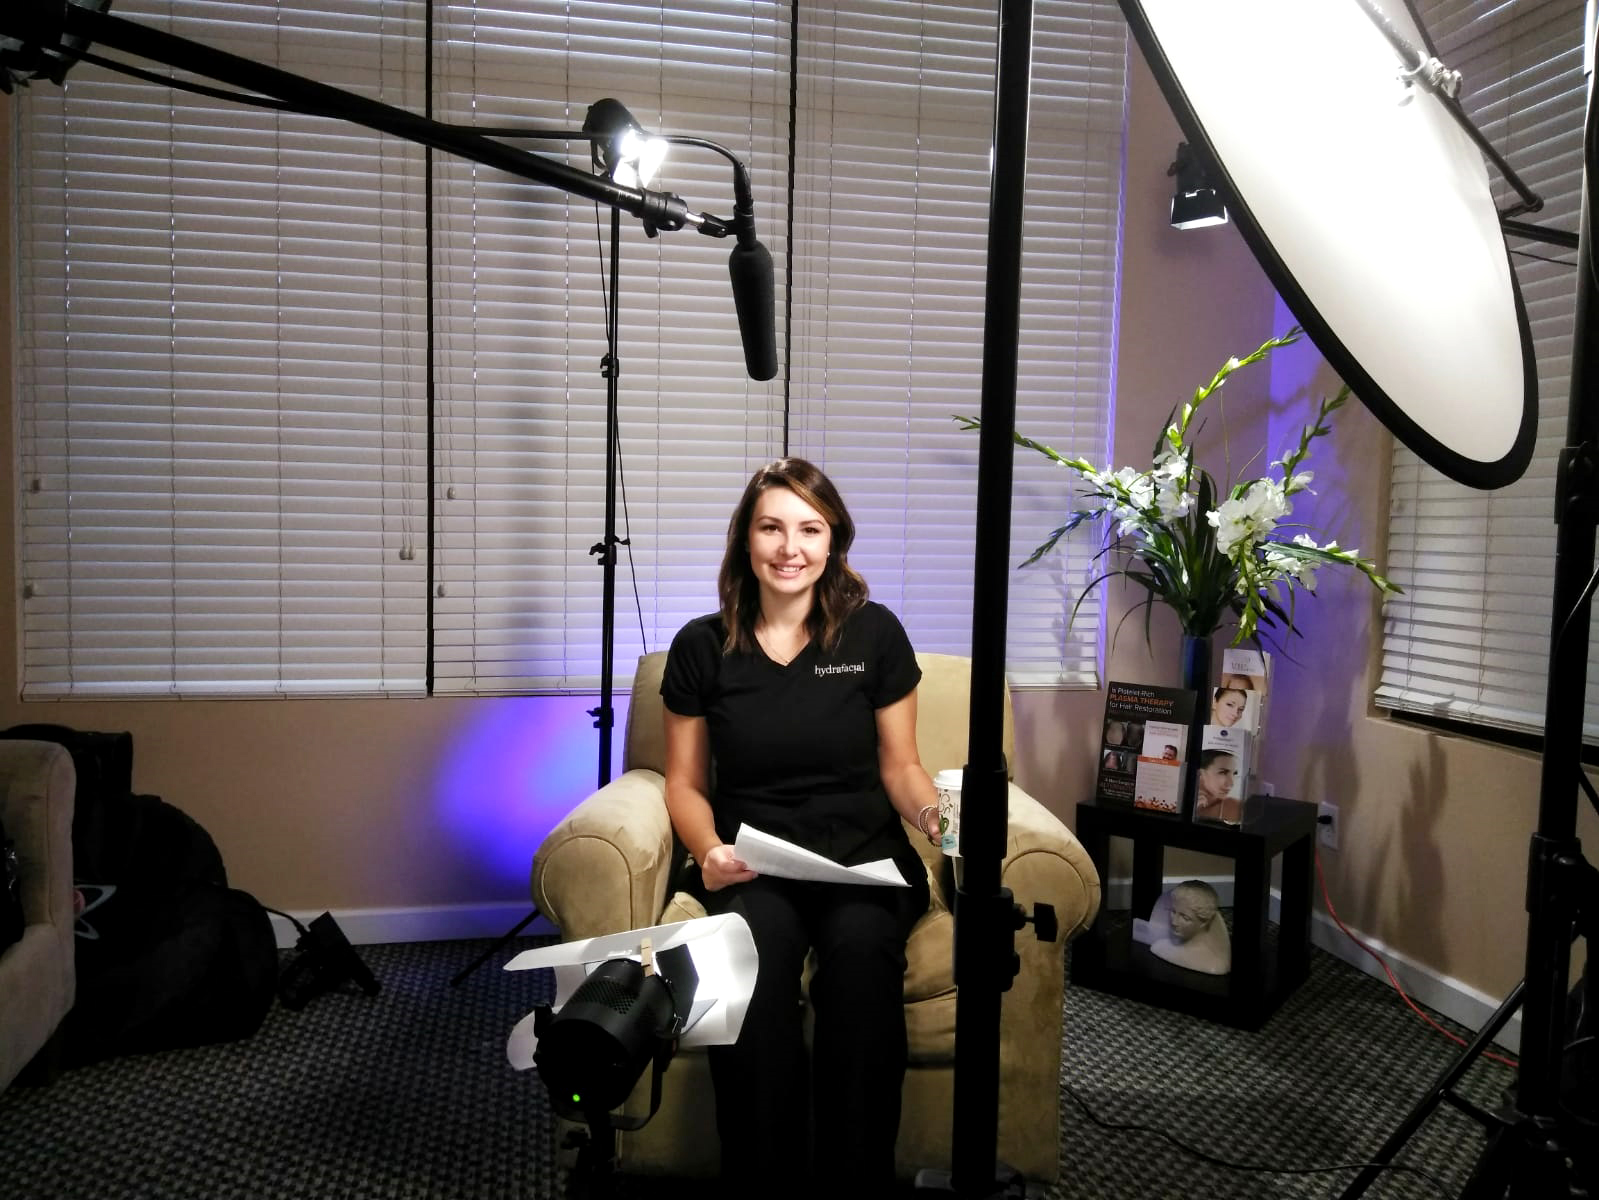 It was a great performance by Nichole Corr-Harris, Licensed Esthetician during filming the interview section of the new Hydrafacial educational video for Riverchase Dermatology in Fort Myers, FL.